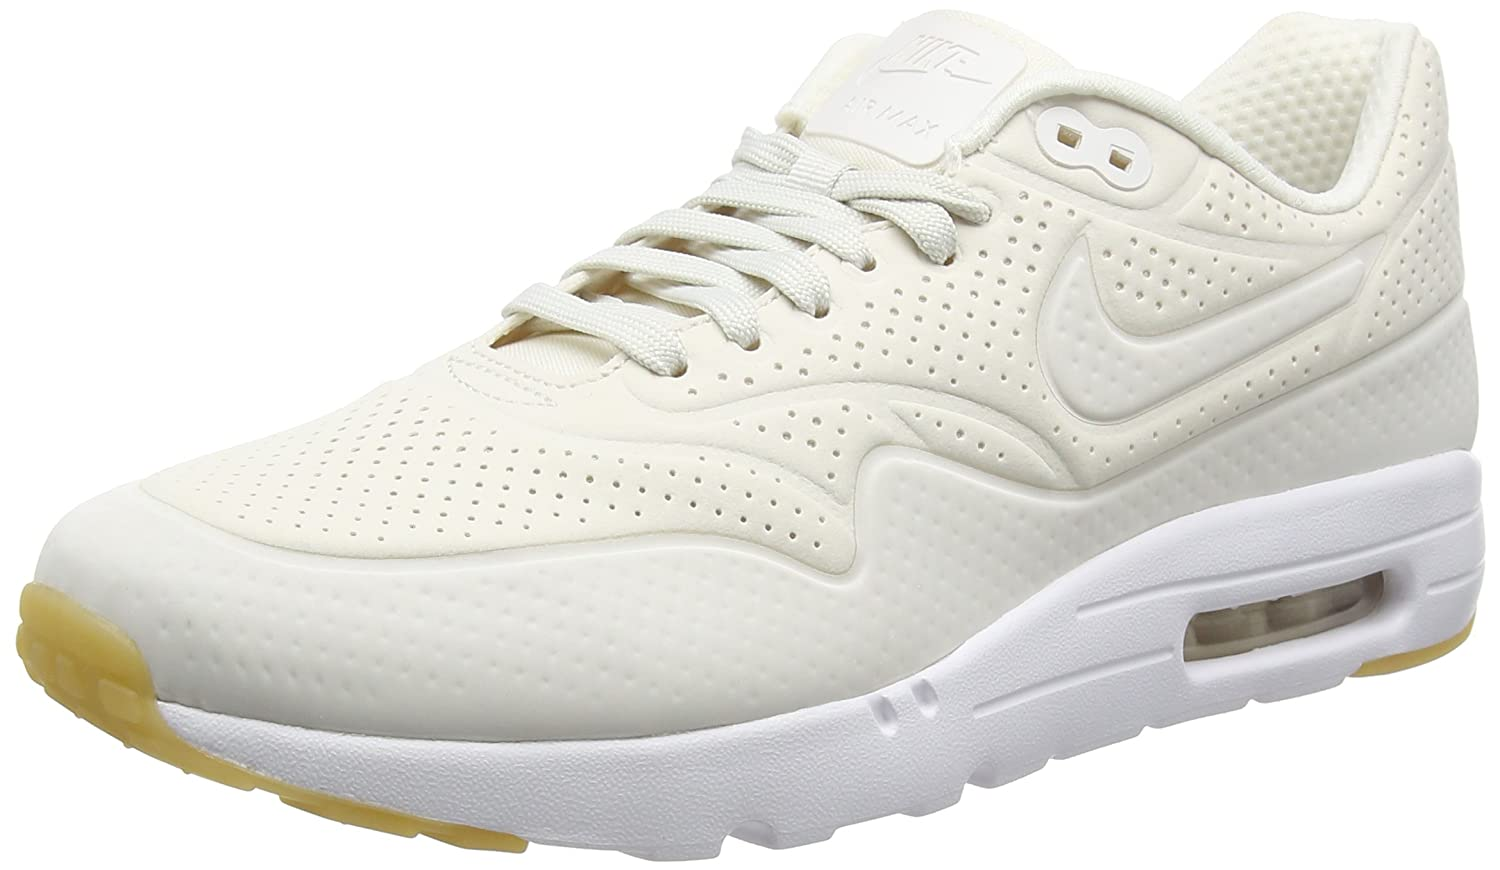 Nike Air Max 1 Ultra Moire shoes white beige | WeAre Shop